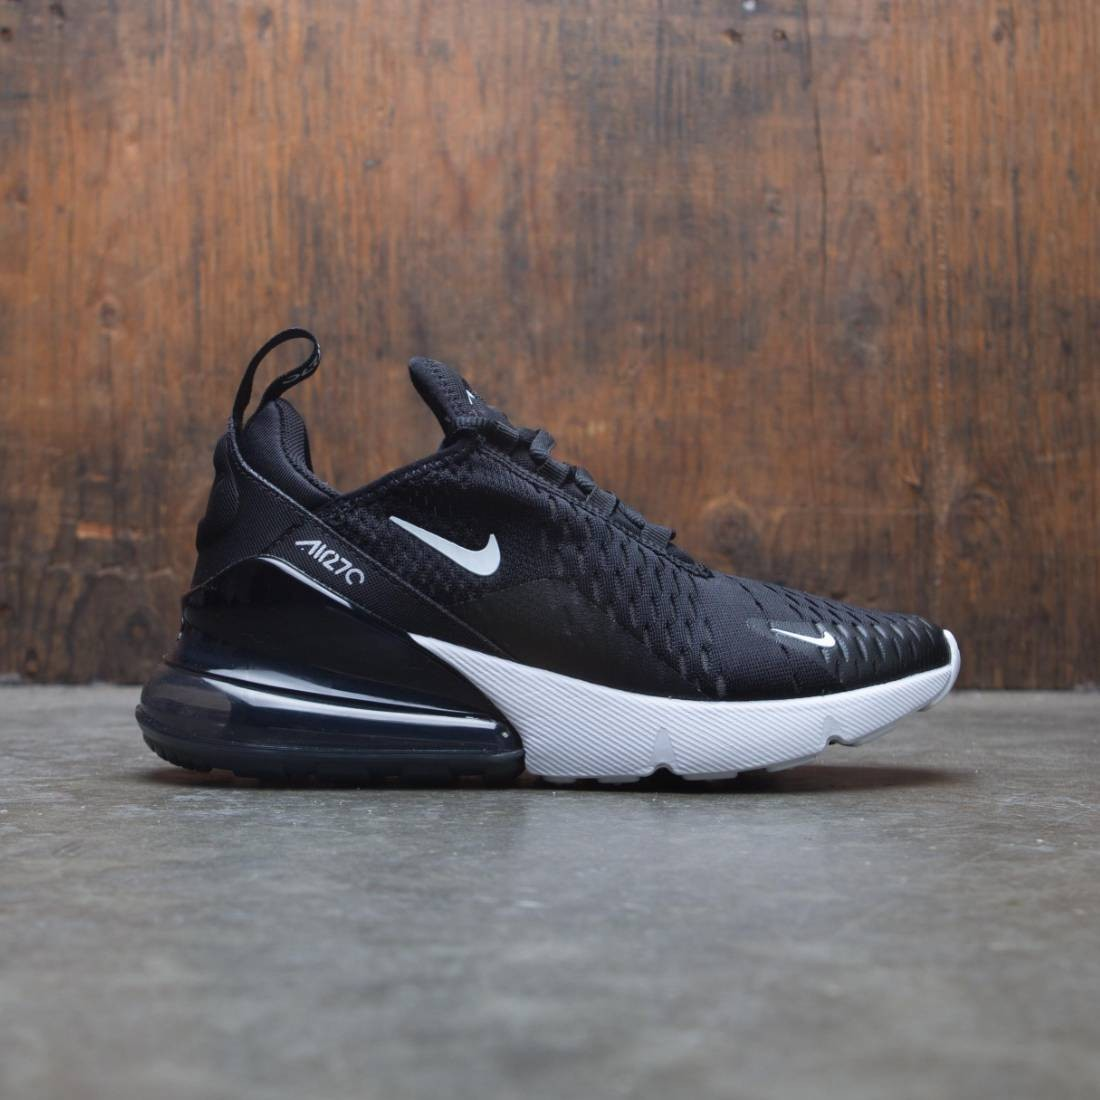 fresa Colectivo ducha  nike women air max 270 black anthracite white